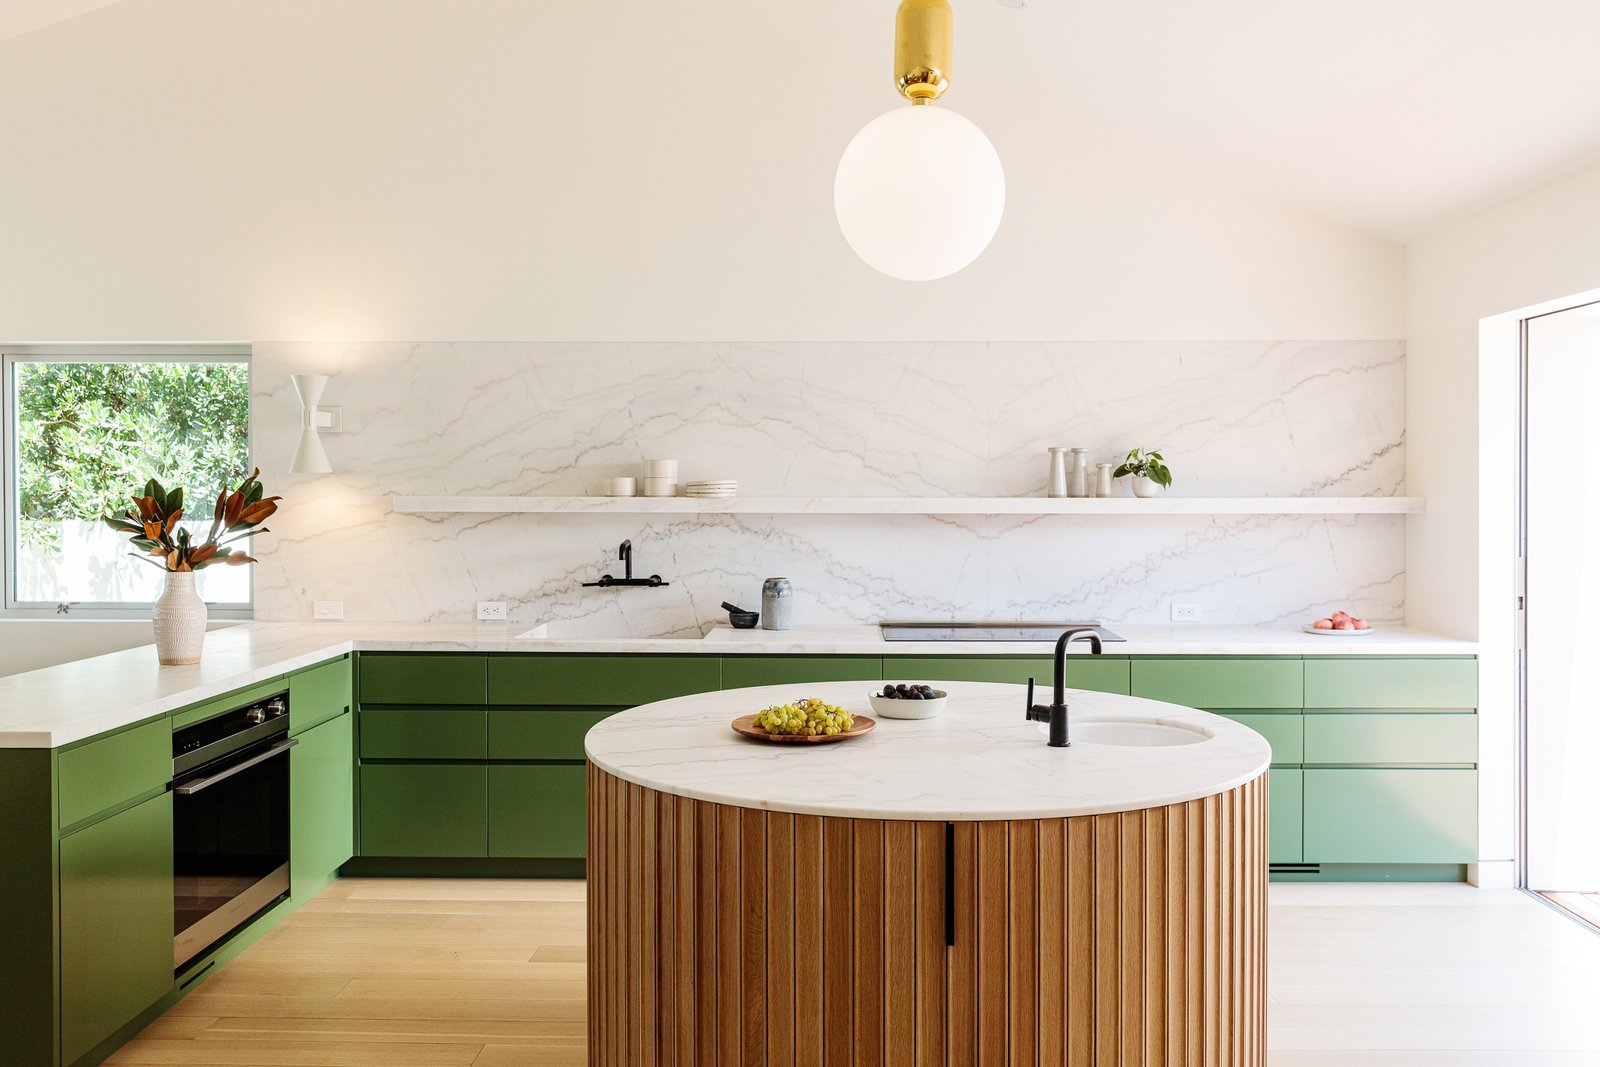 Courtyard House by And And And Studio kitchen with green cabinets, marble countertops, and a round island